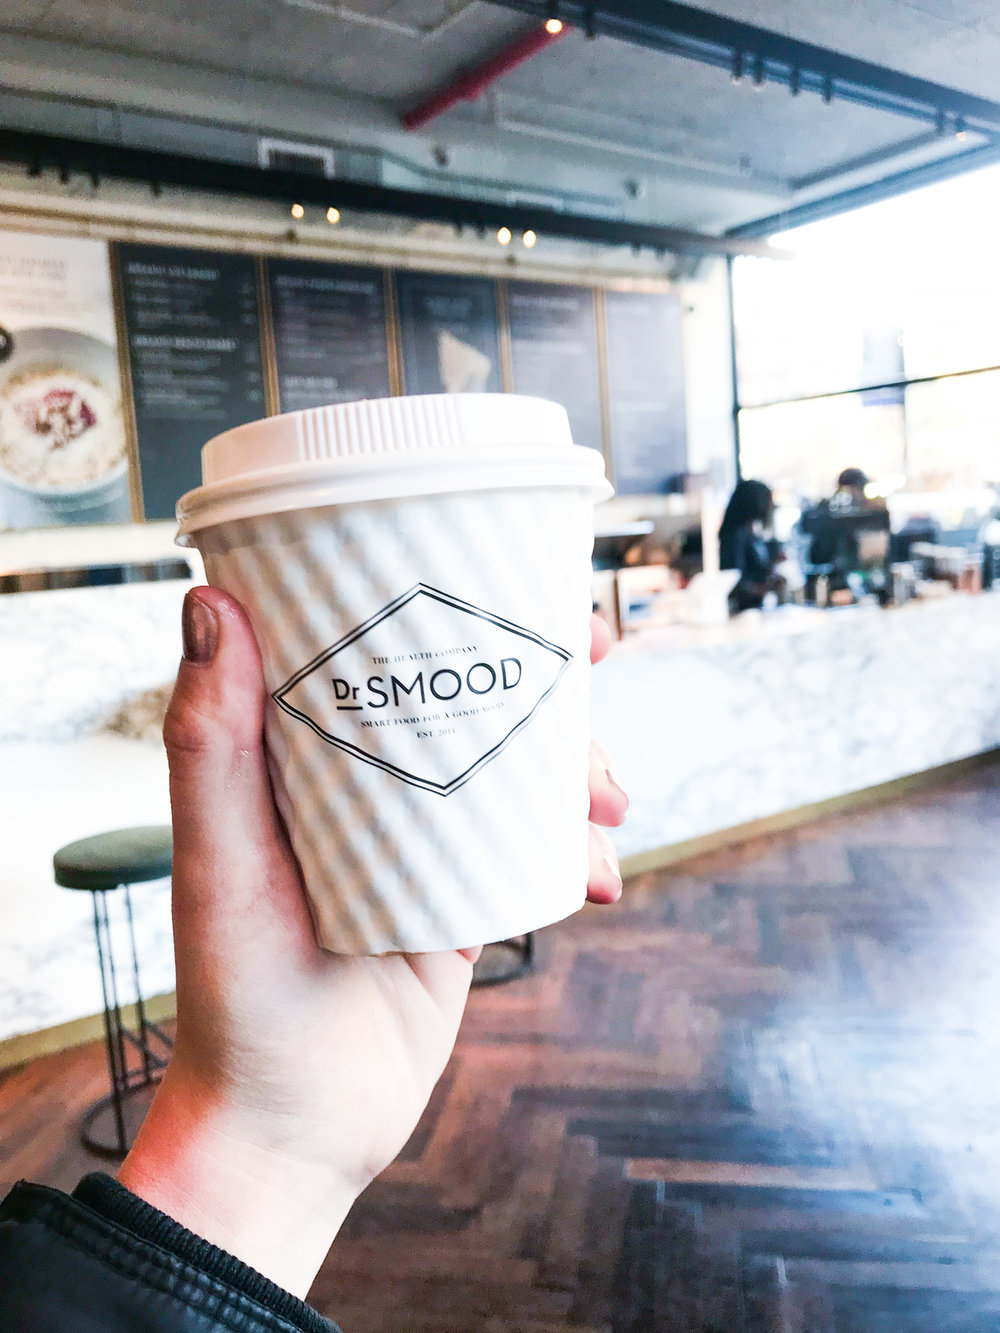 - While enjoying my coffee, I discovered the menu at Dr. Smood's and after my mouth watered for about five minutes too long I ordered the Vegan Sandwich (once again trying new things!) the sandwich has: